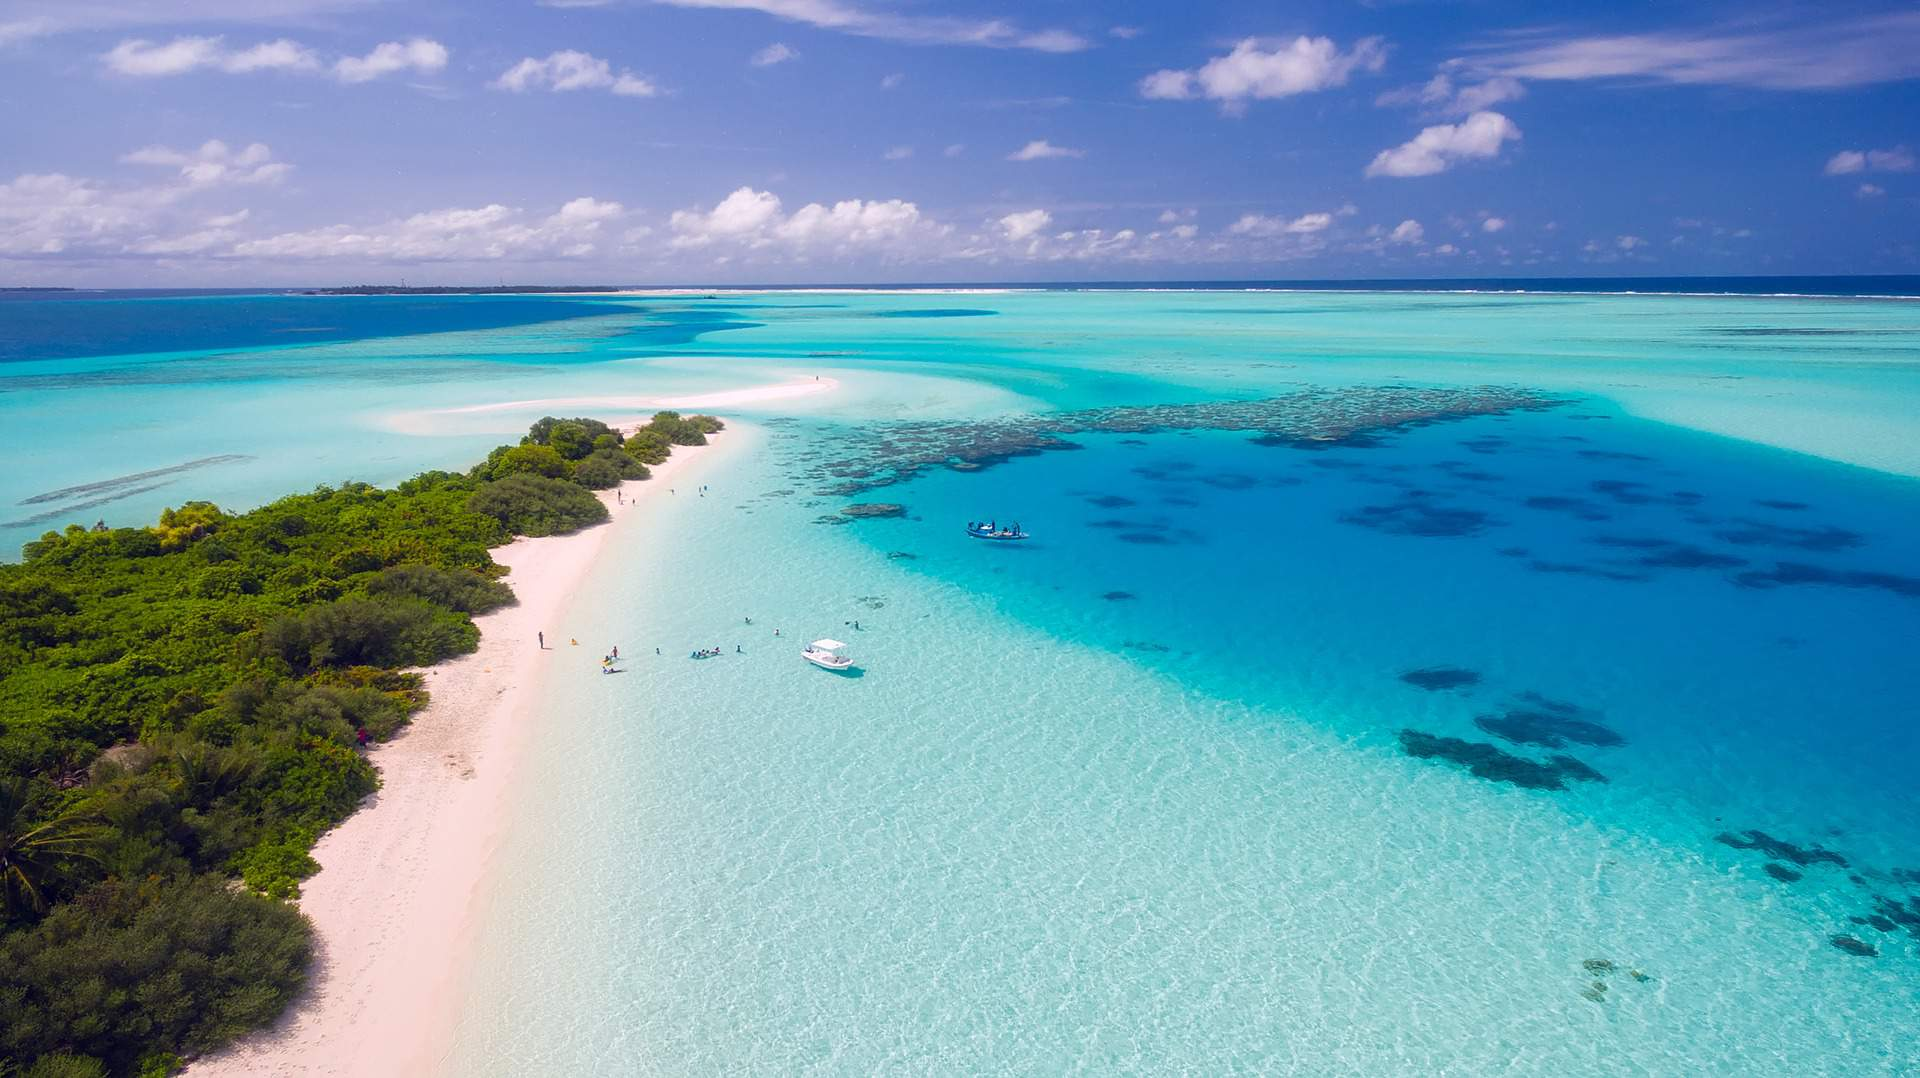 Maldives, tropical, travel